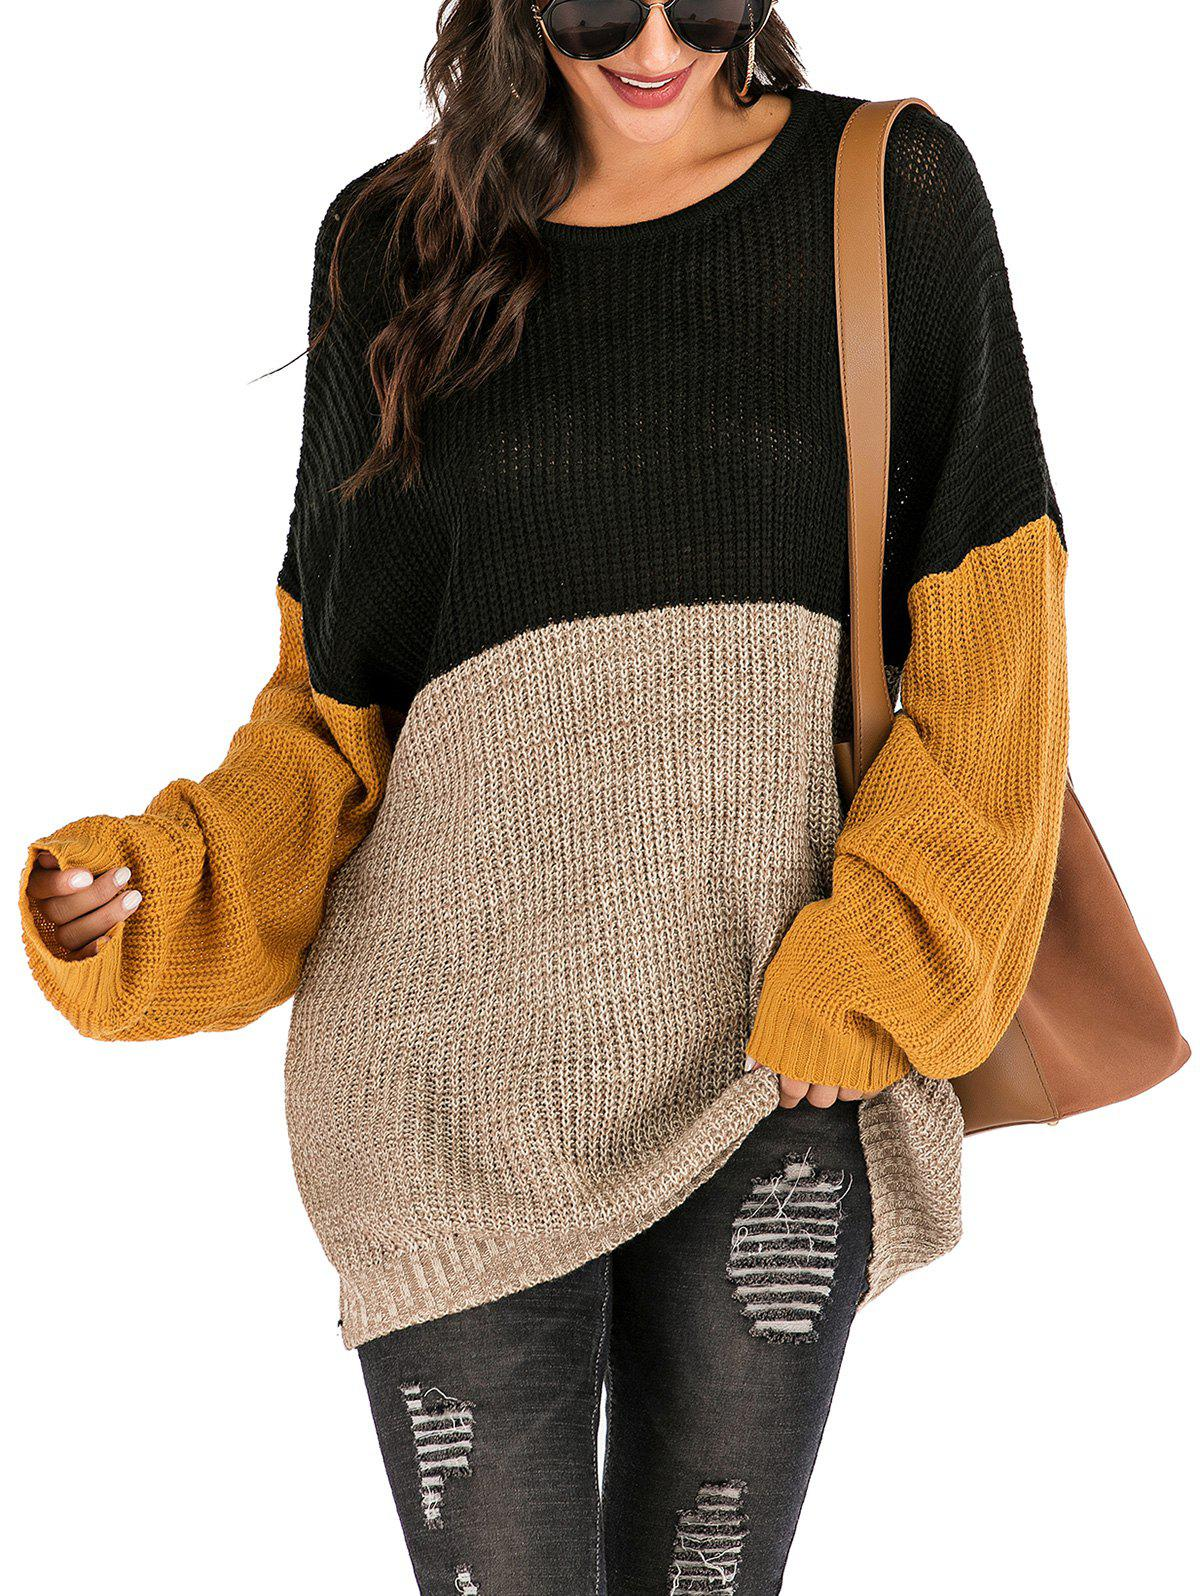 Colorblock Heathered Oversized Tunic Sweater - BLACK S